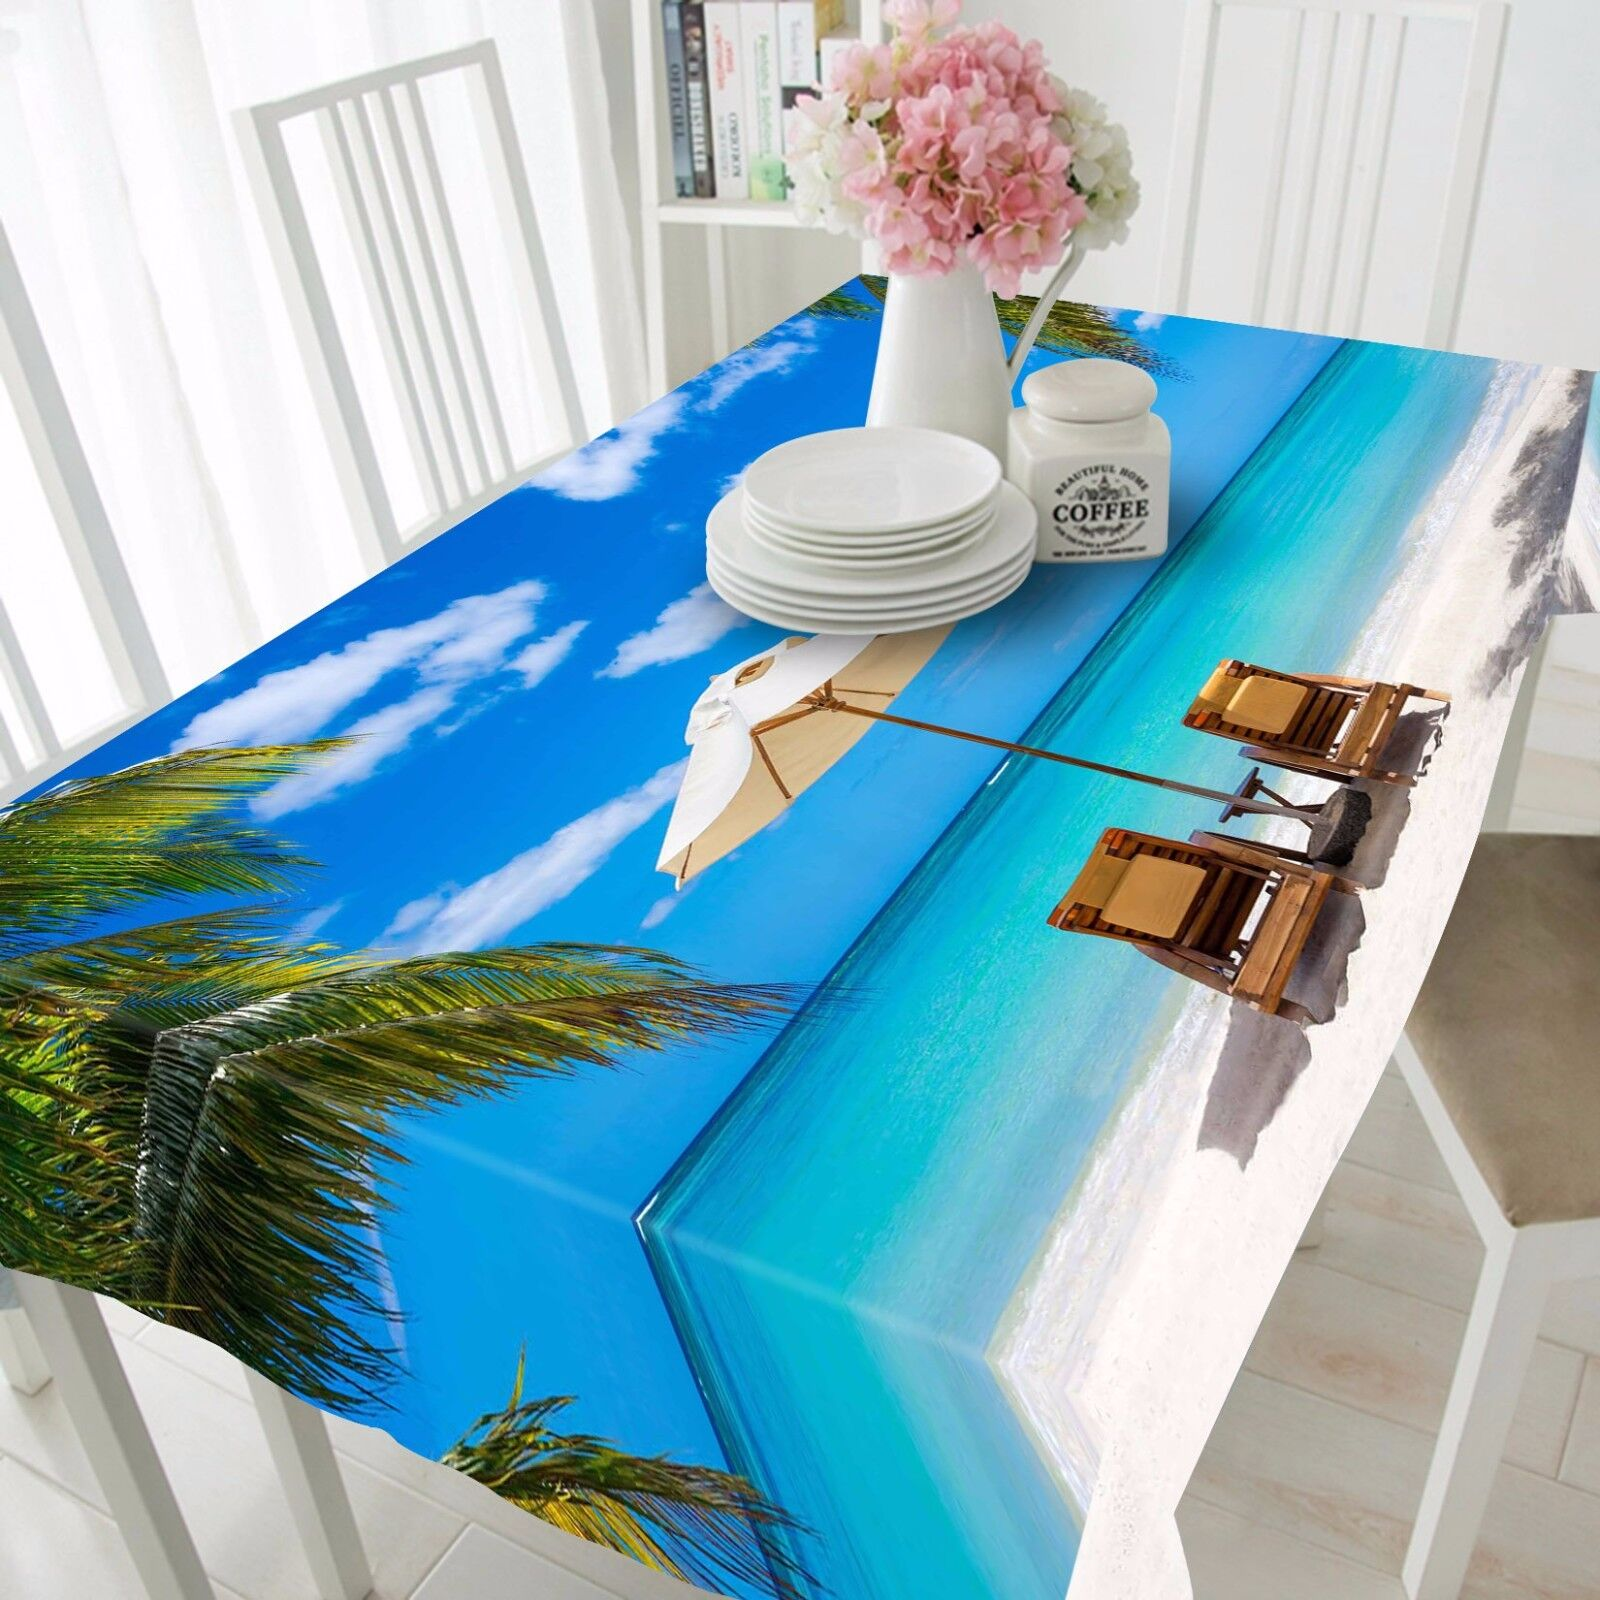 3D Sea Beach Nappe Table Cover Cloth fête d'anniversaire AJ papier peint Royaume-Uni Citron